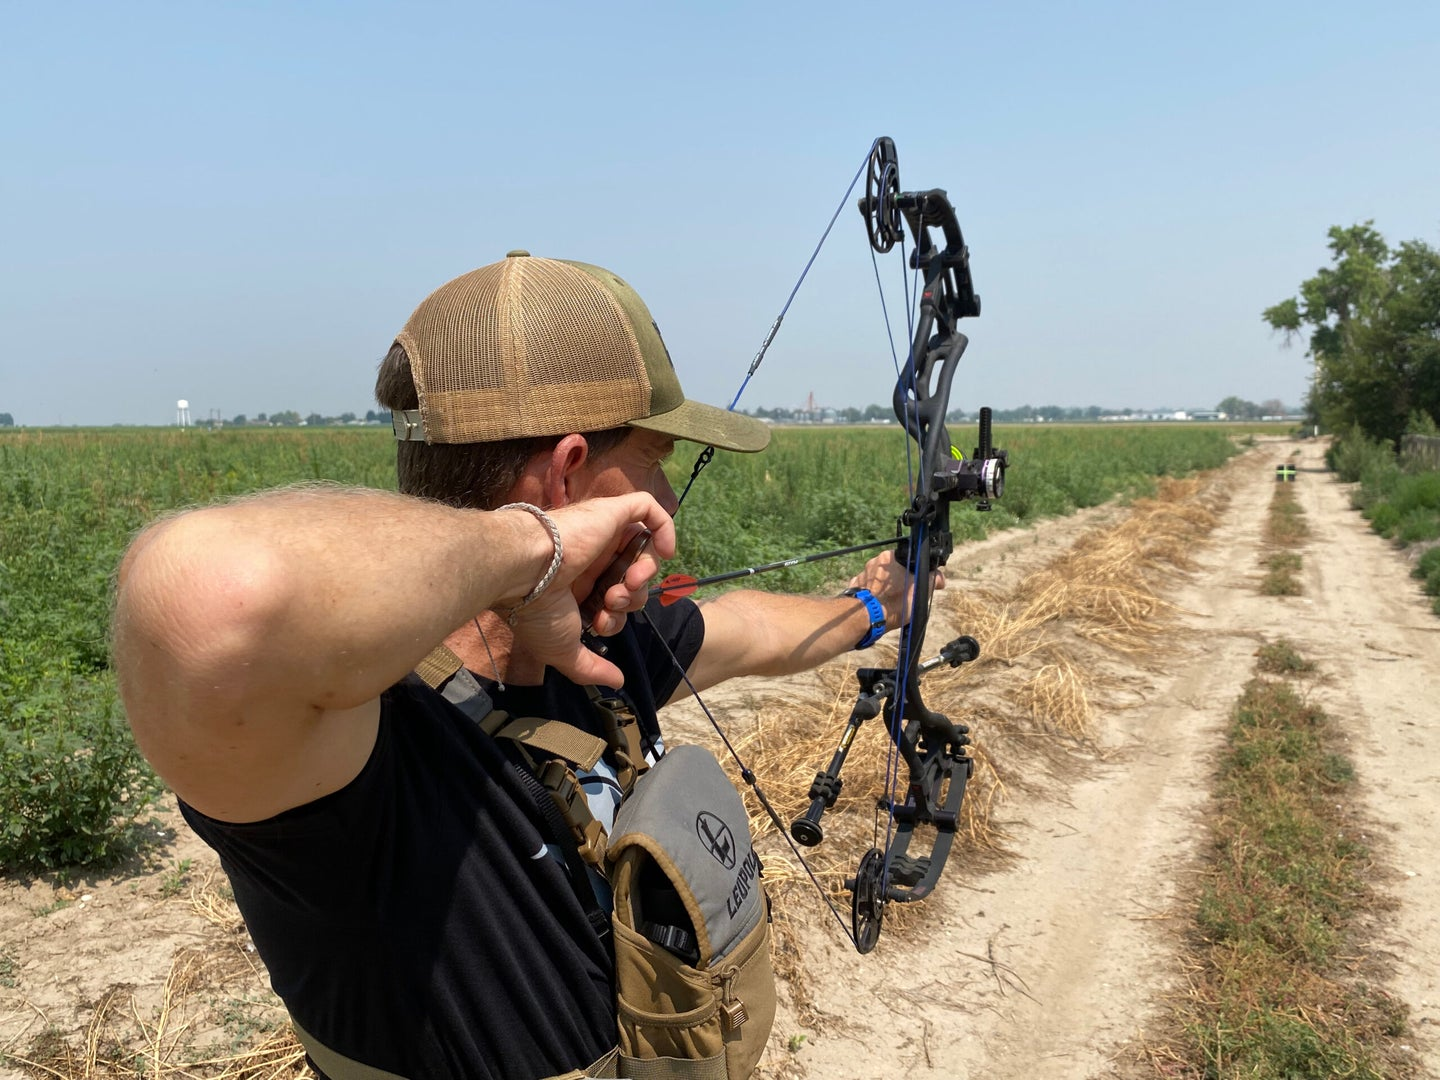 Practice shooting your bow a lot to become more accurate.